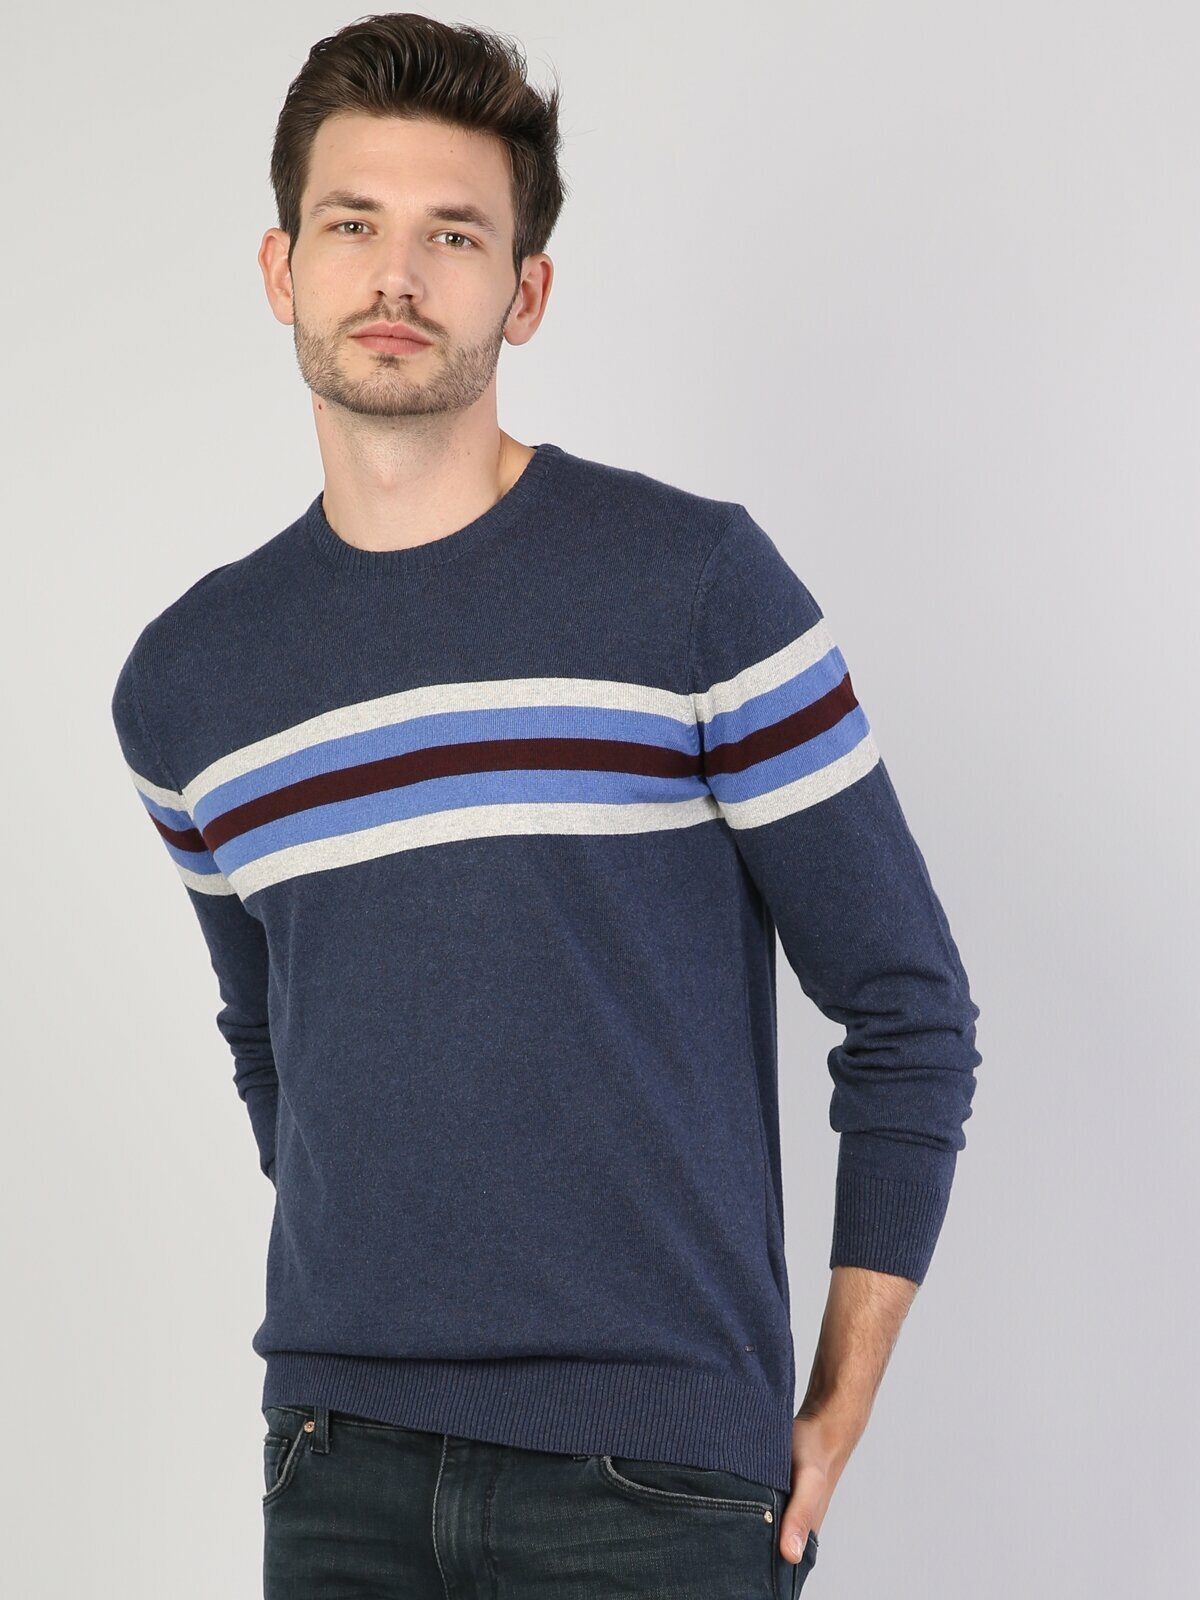 Colins Men Regular Fit Navy Heather SweatersMen's sweater fashion sweater outerwear,CL1040622